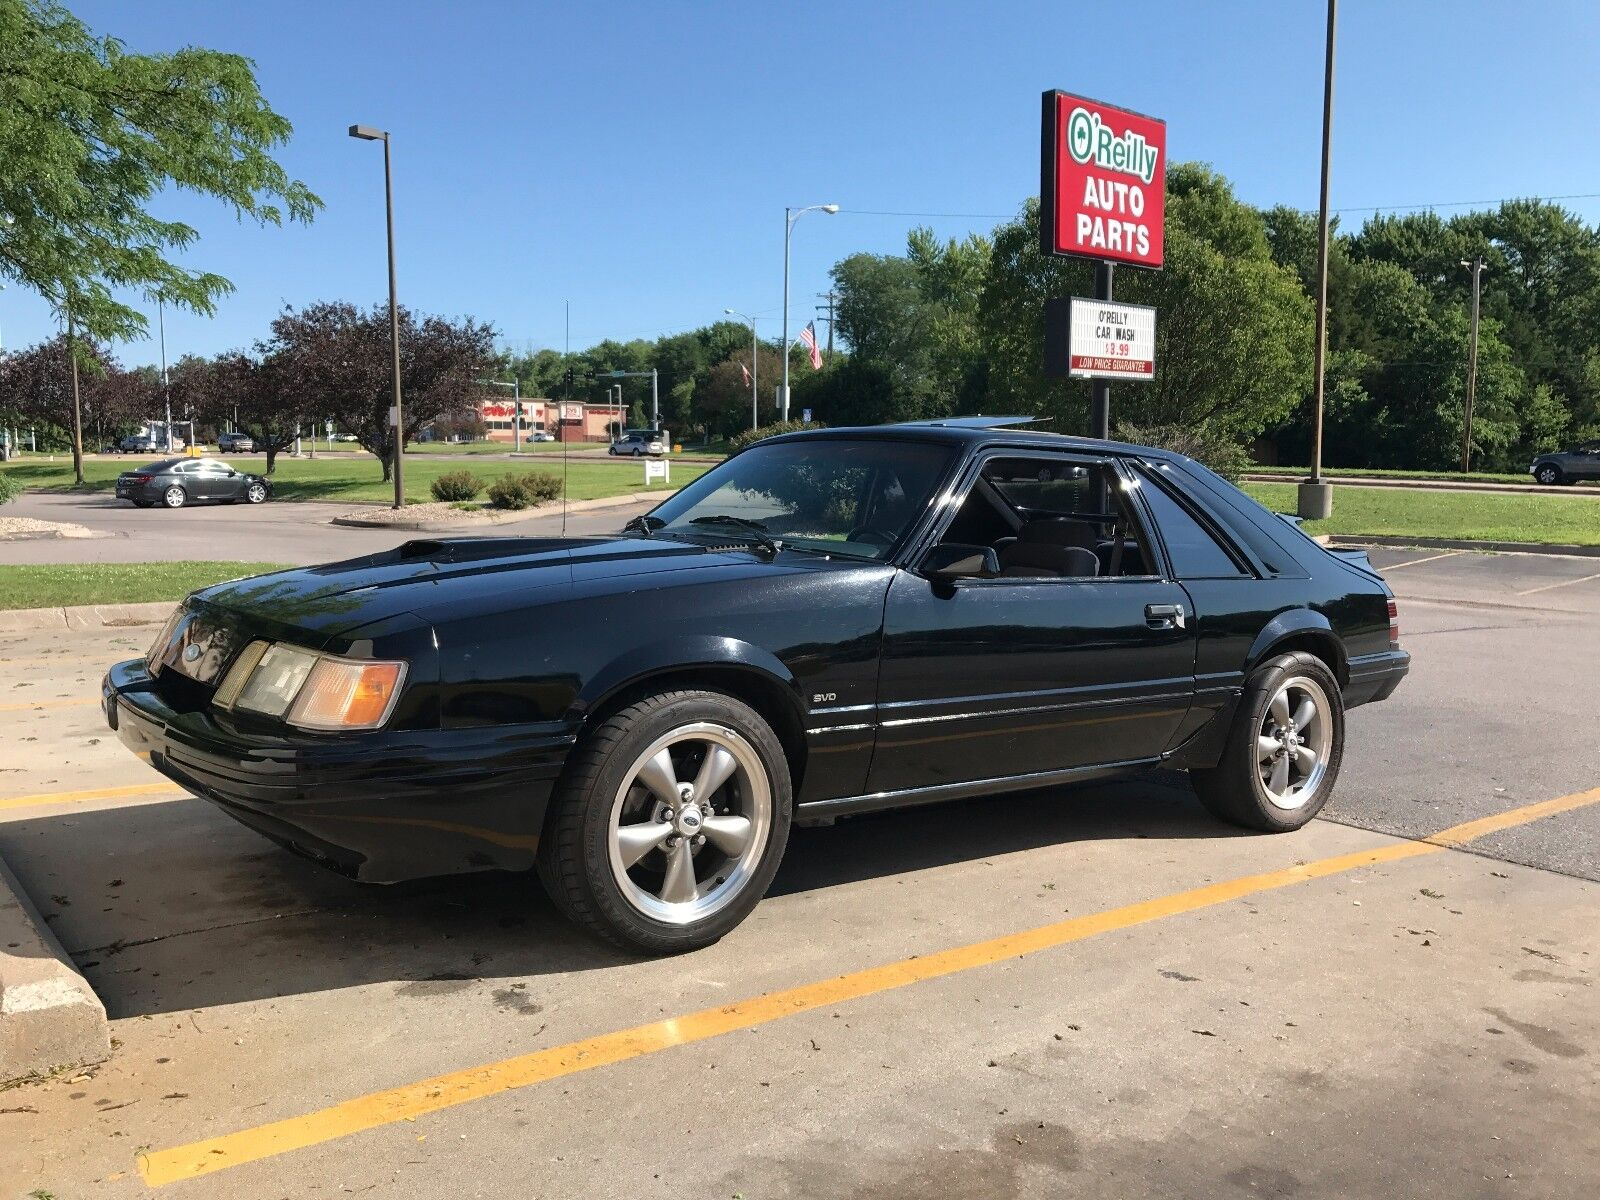 1986 Ford Mustang Svo - Used Ford Mustang for sale in ...